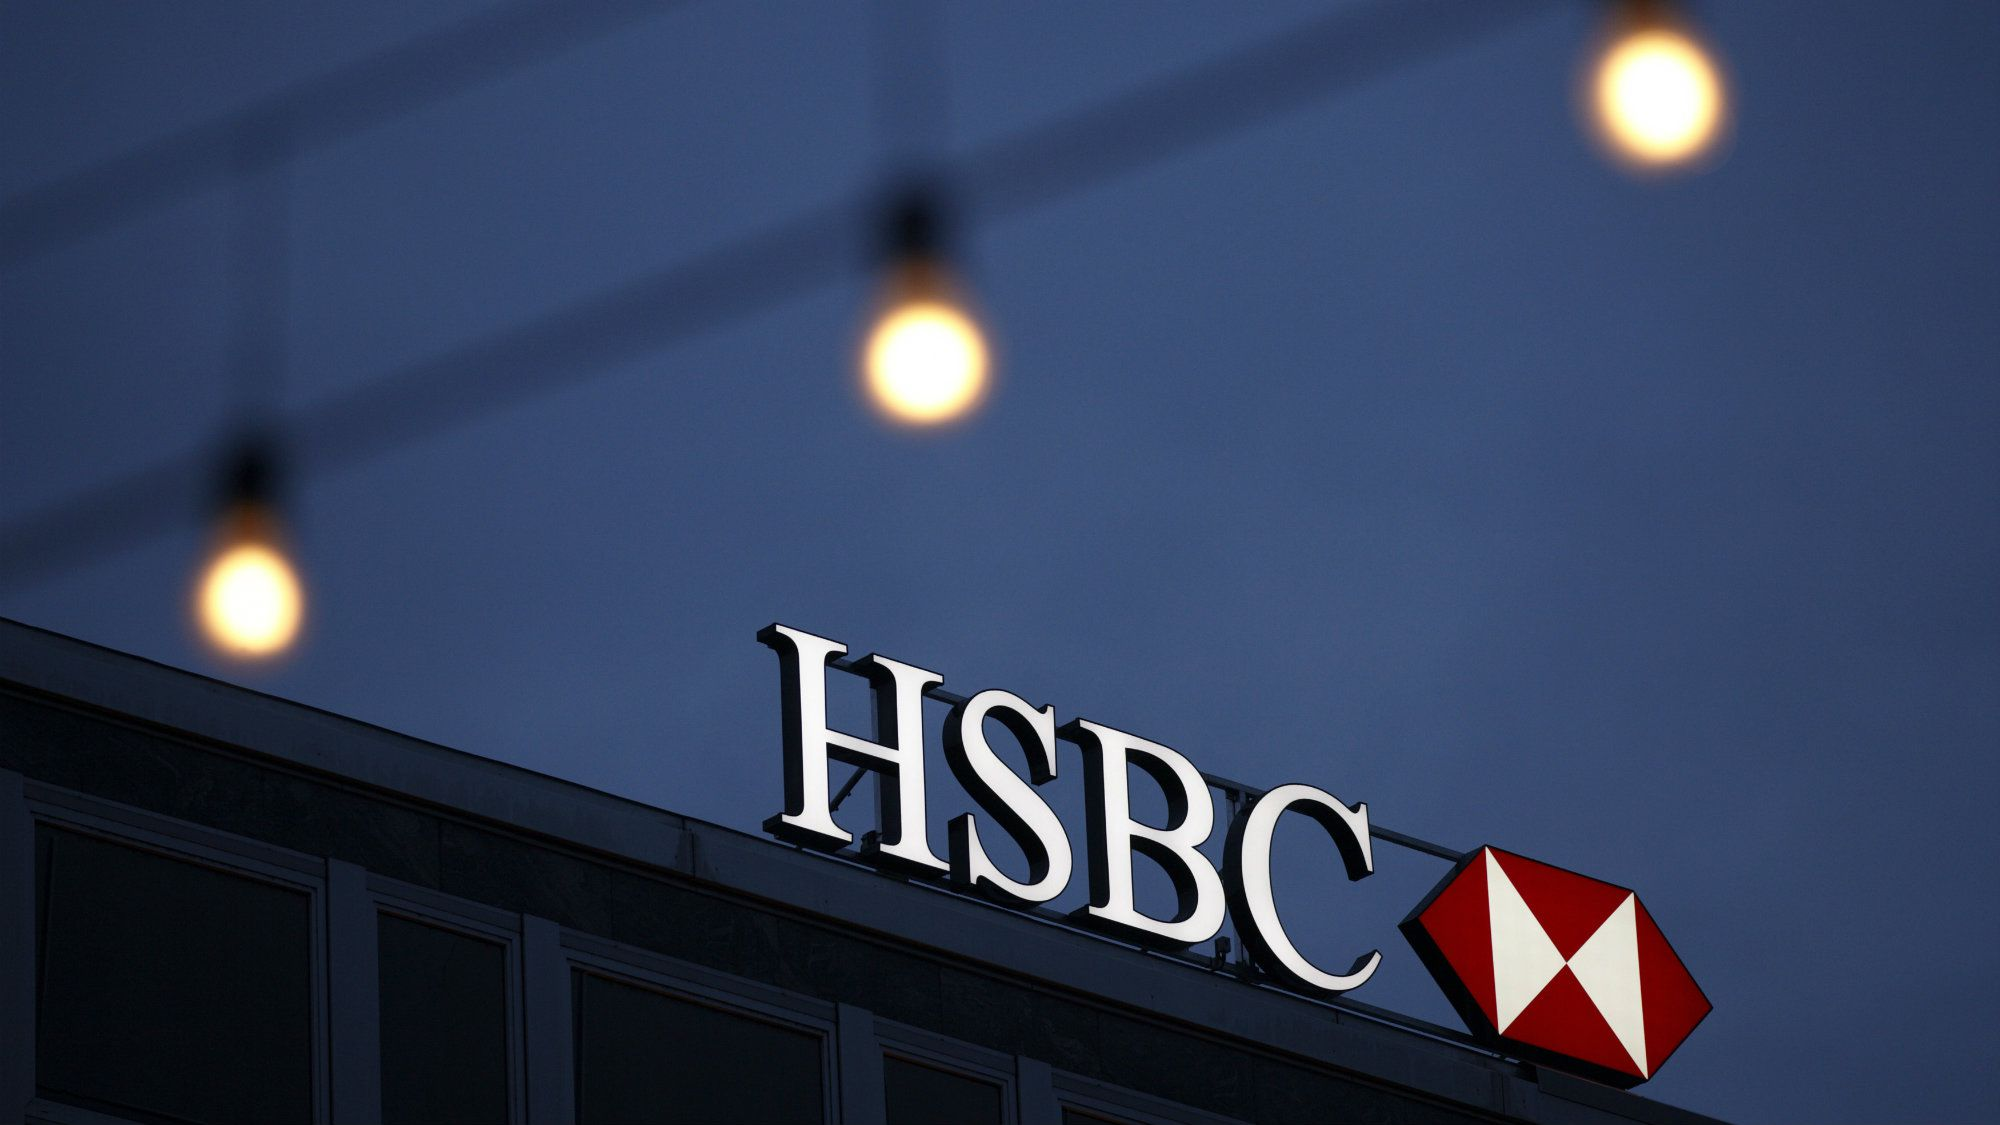 A HSBC logo is seen on the Private Bank Building in Geneva.